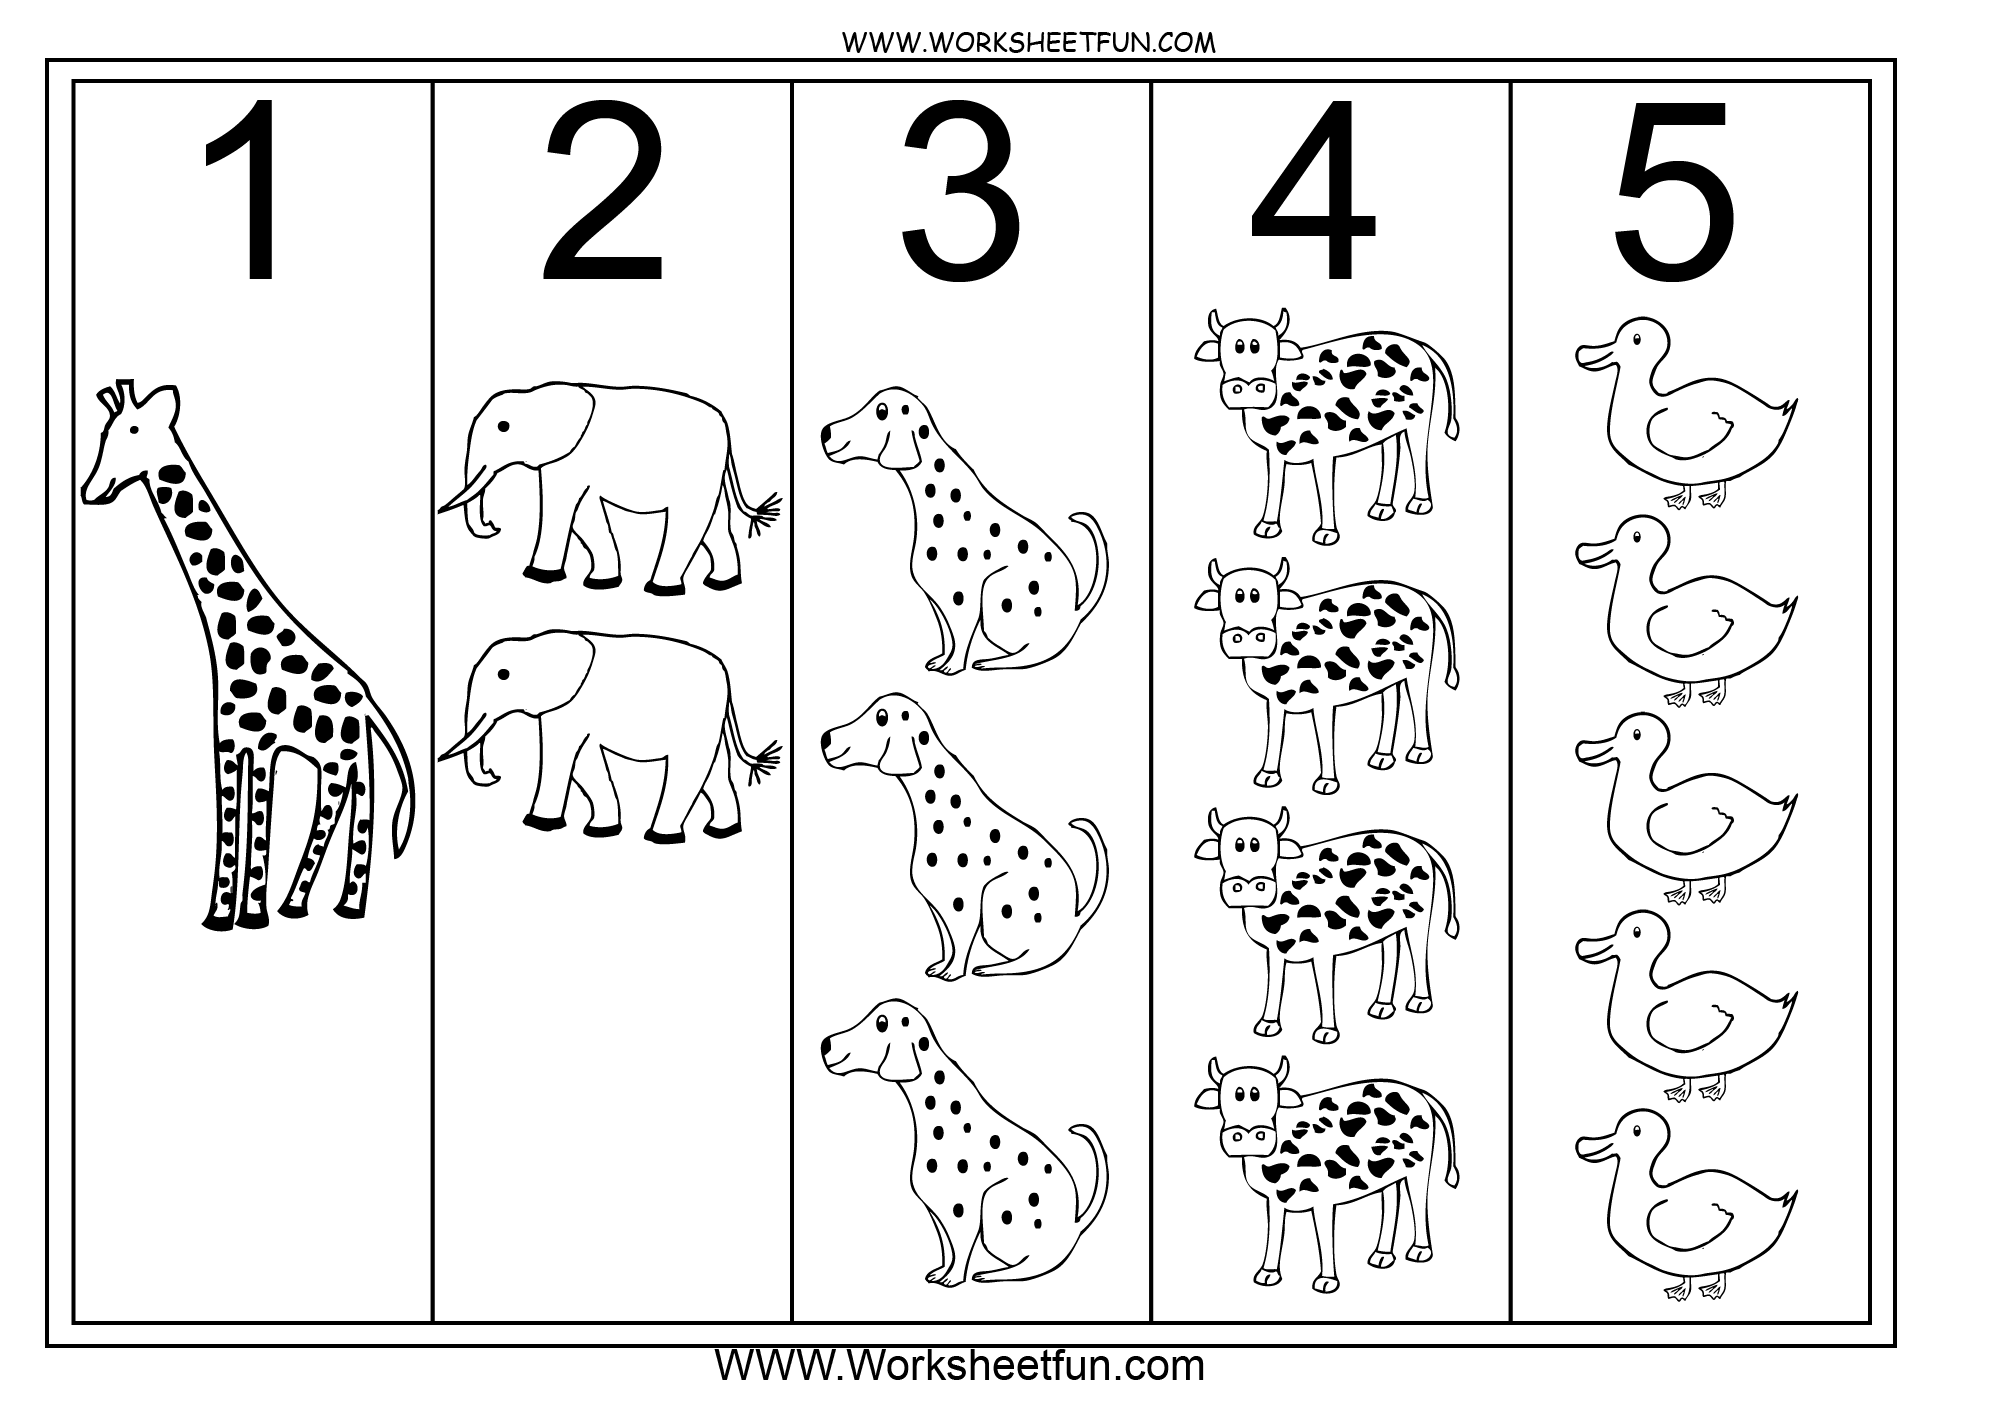 Worksheet Printable Numbers 1-20 numbers 1 10 worksheets printable worksheet preschool math lesson plans gameath worksheets